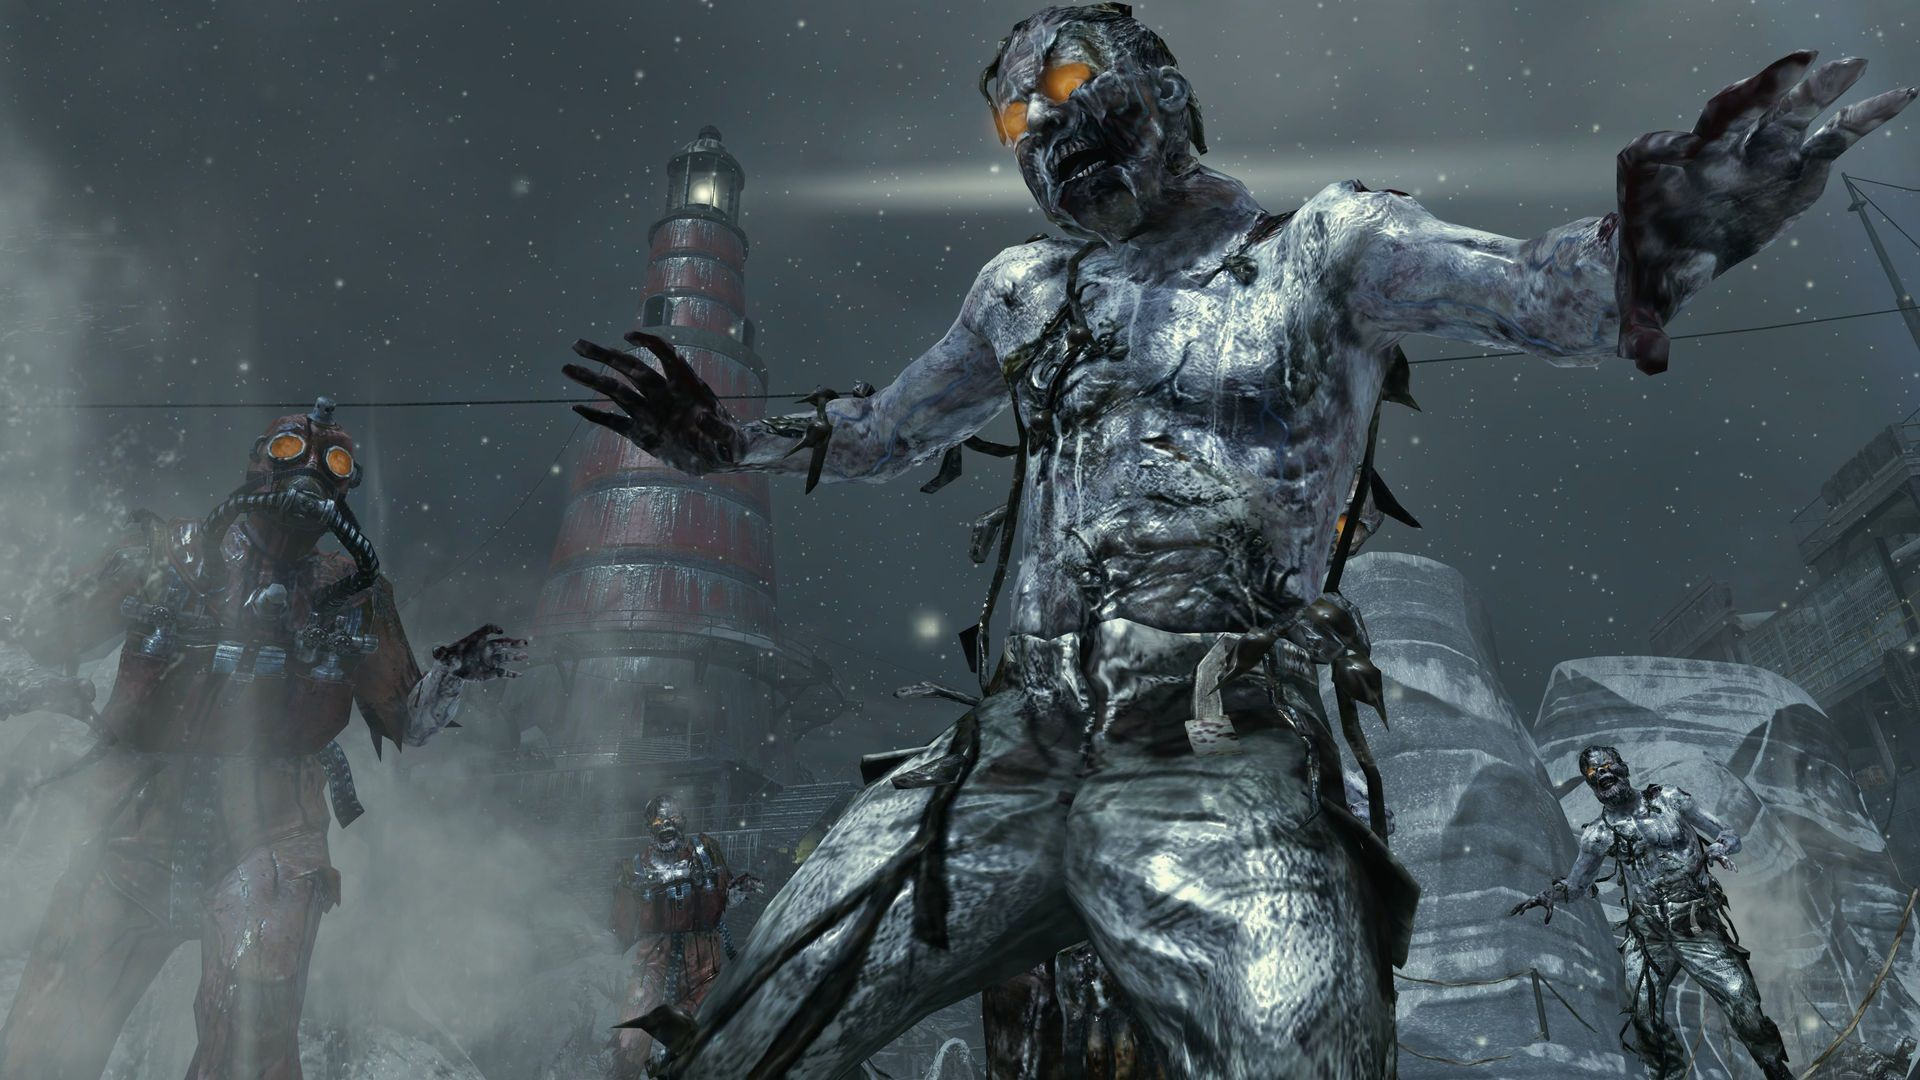 1920x1080 Black Ops 2 Zombies Background HD Wallpaper